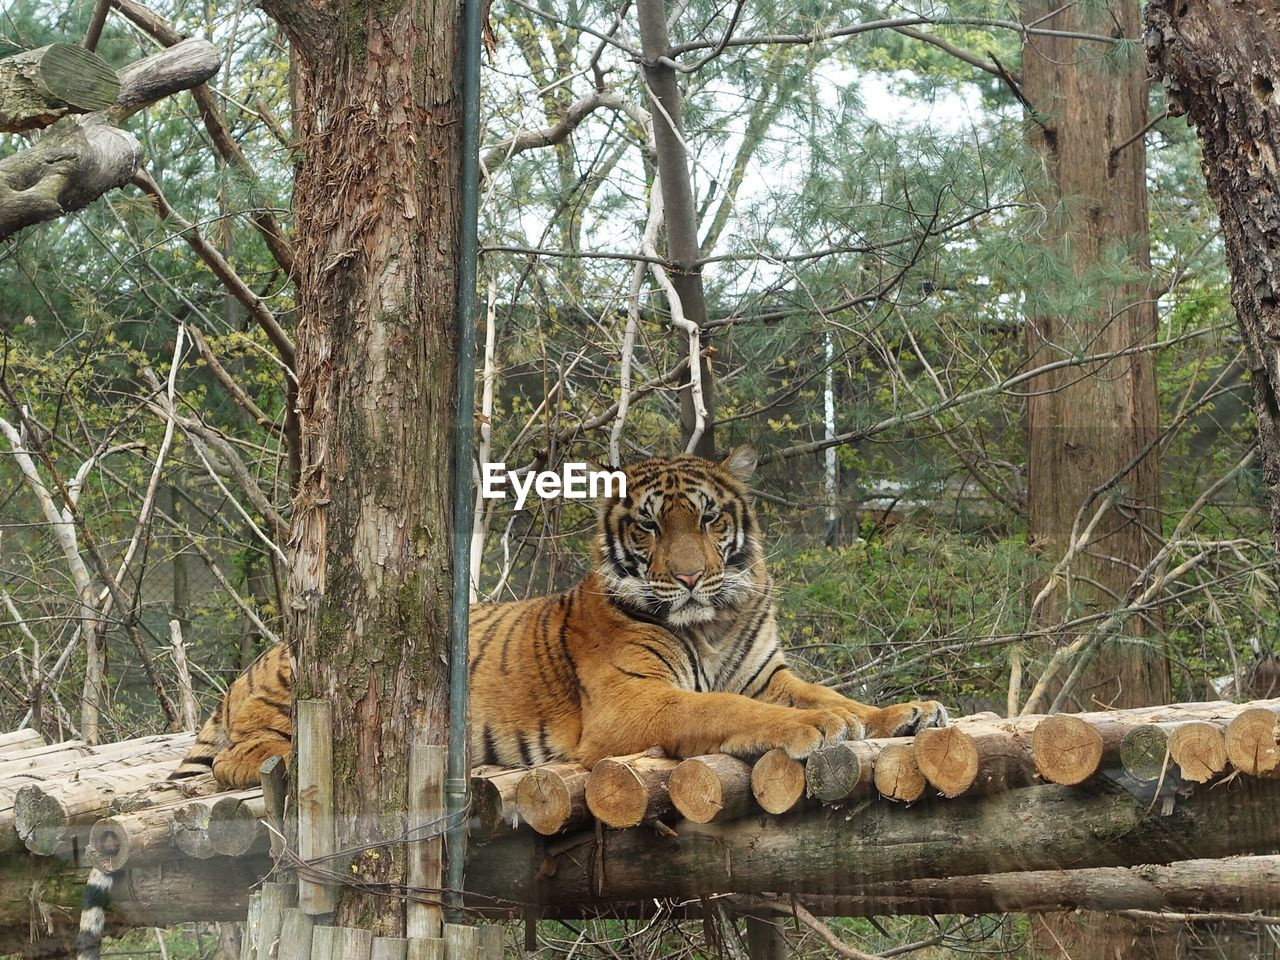 tree, feline, cat, mammal, animal wildlife, animal, big cat, animal themes, animals in the wild, tiger, plant, forest, carnivora, nature, relaxation, land, day, vertebrate, no people, outdoors, zoo, undomesticated cat, whisker